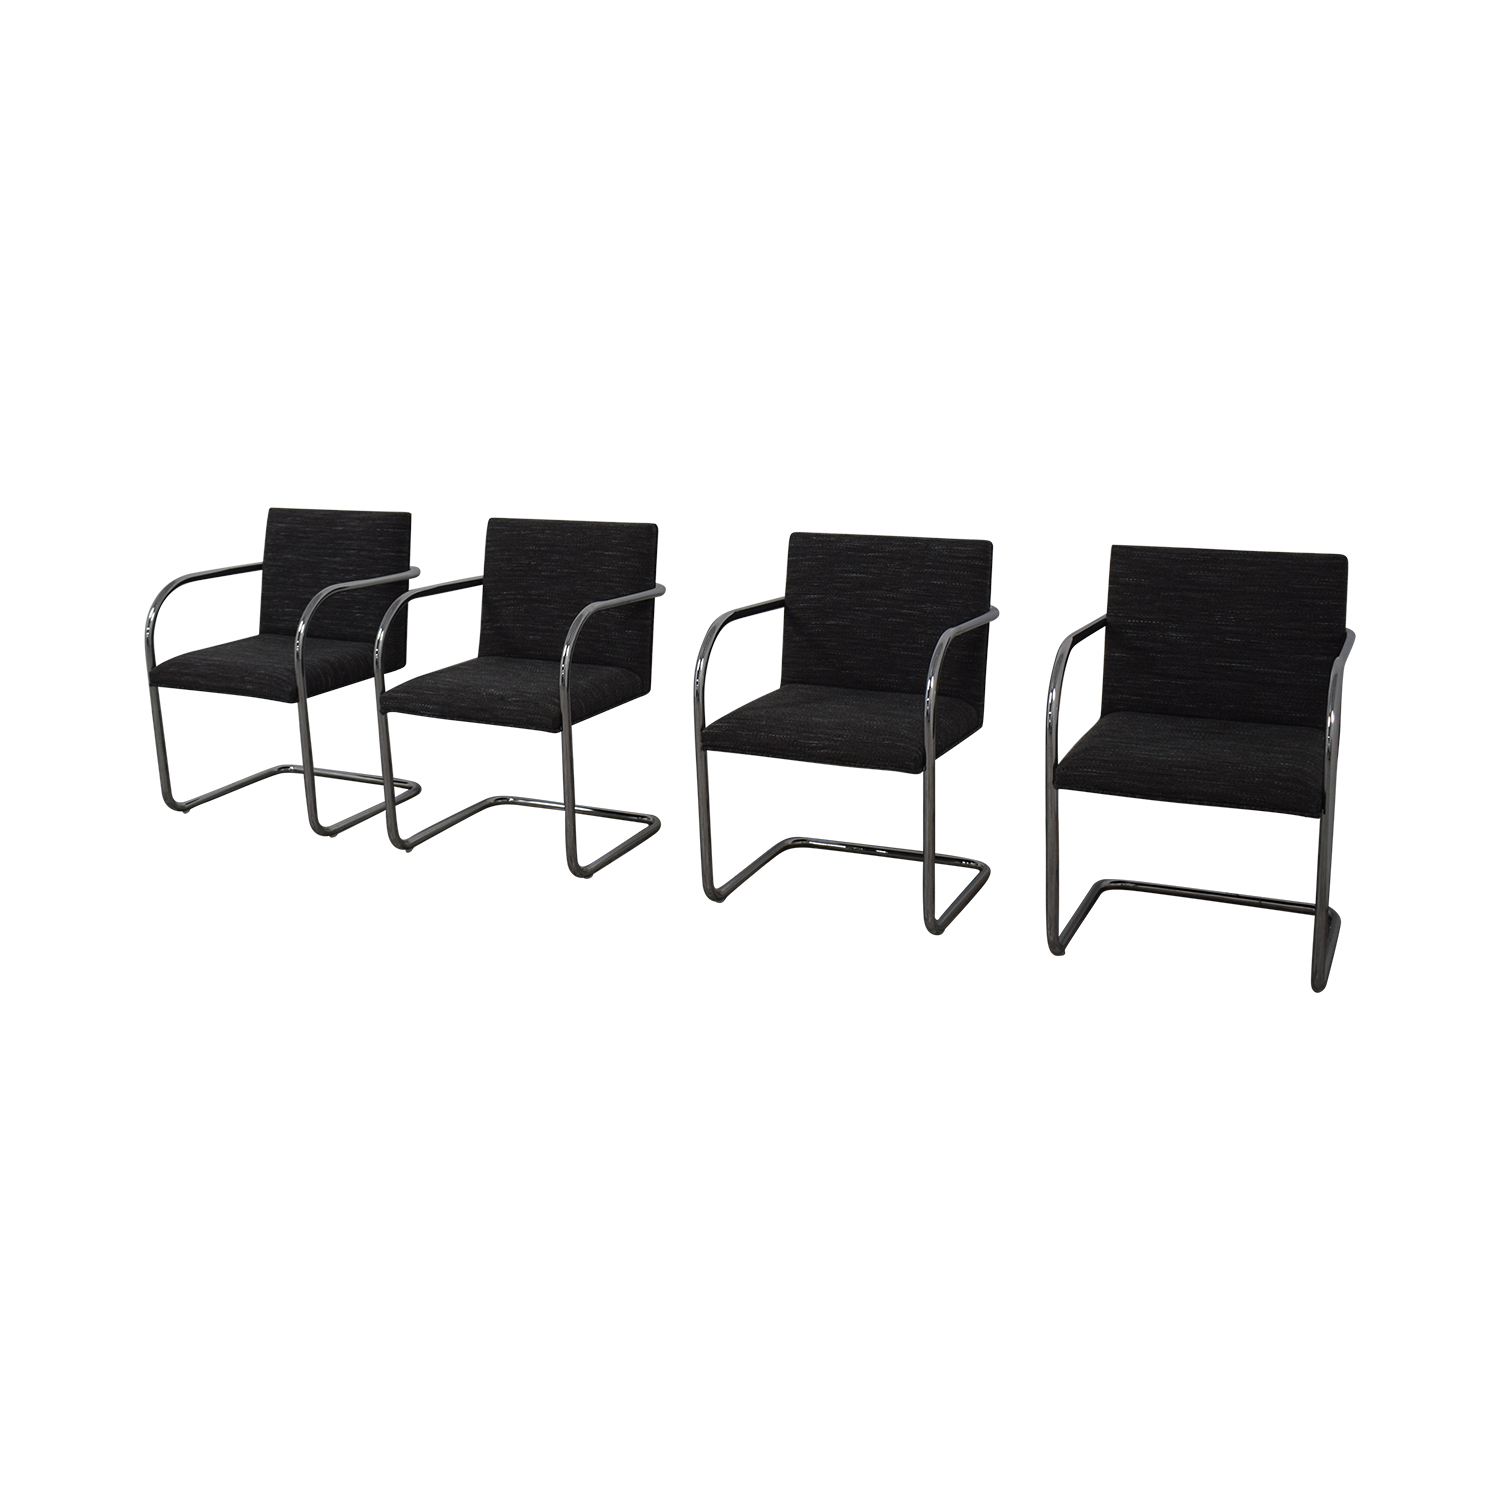 Chrome Upholstered Office Chairs on sale